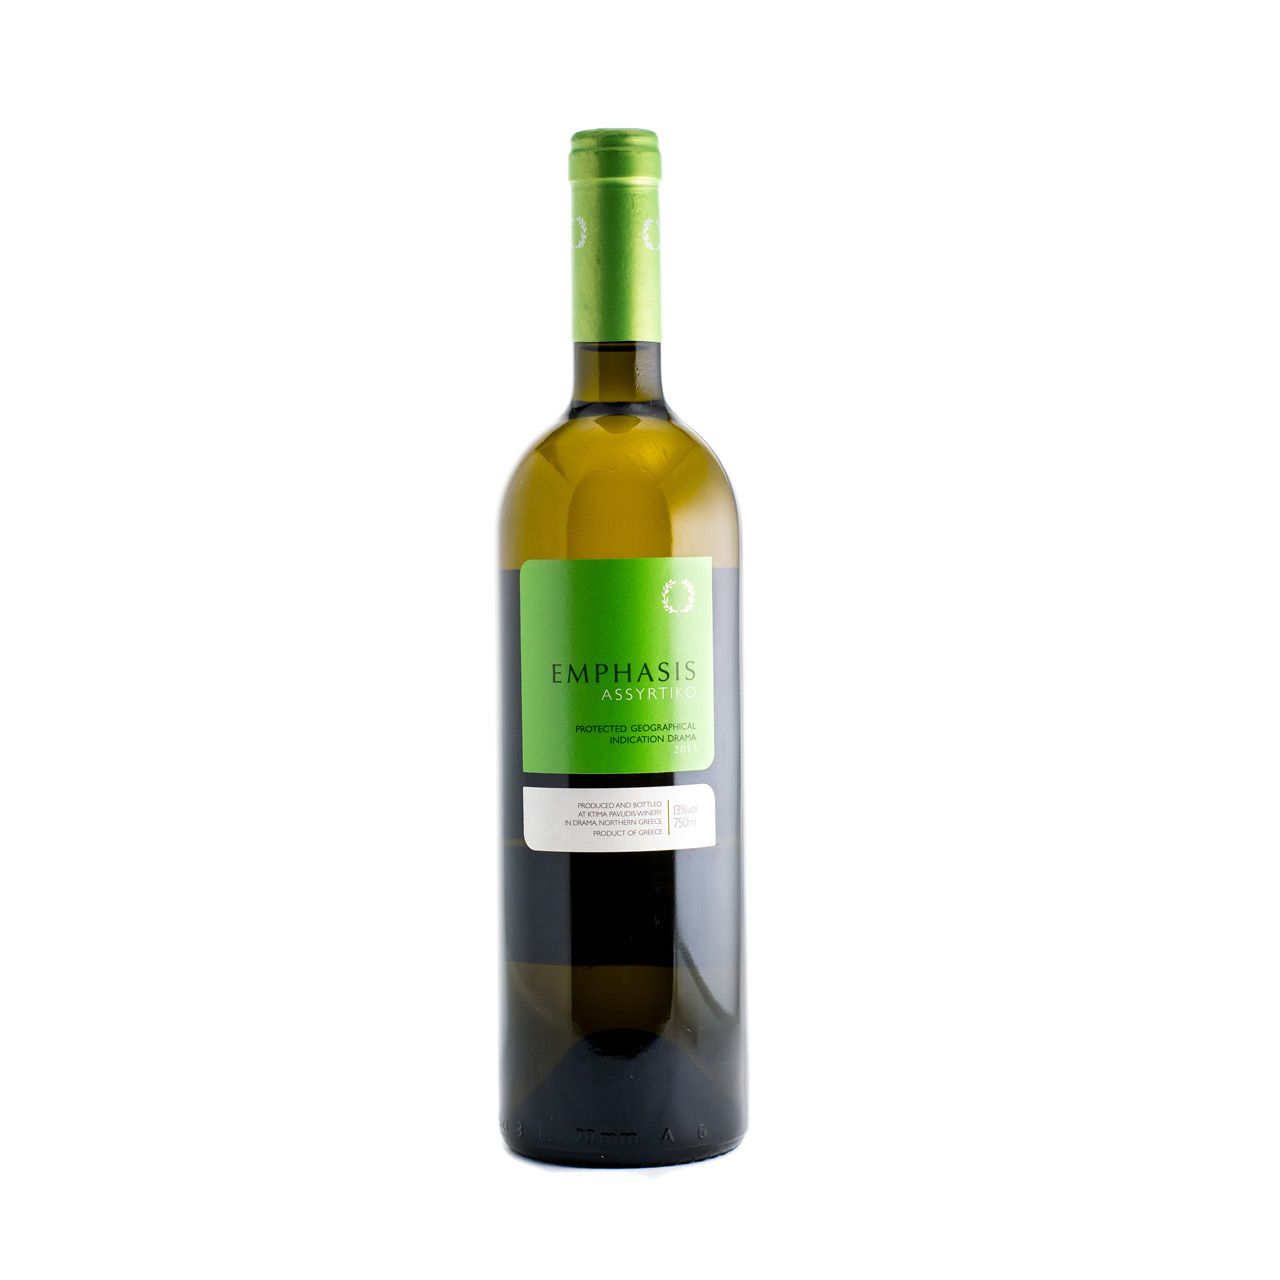 Vin Alb Emphasis Assyrtiko 2013 Pavlidis Estate